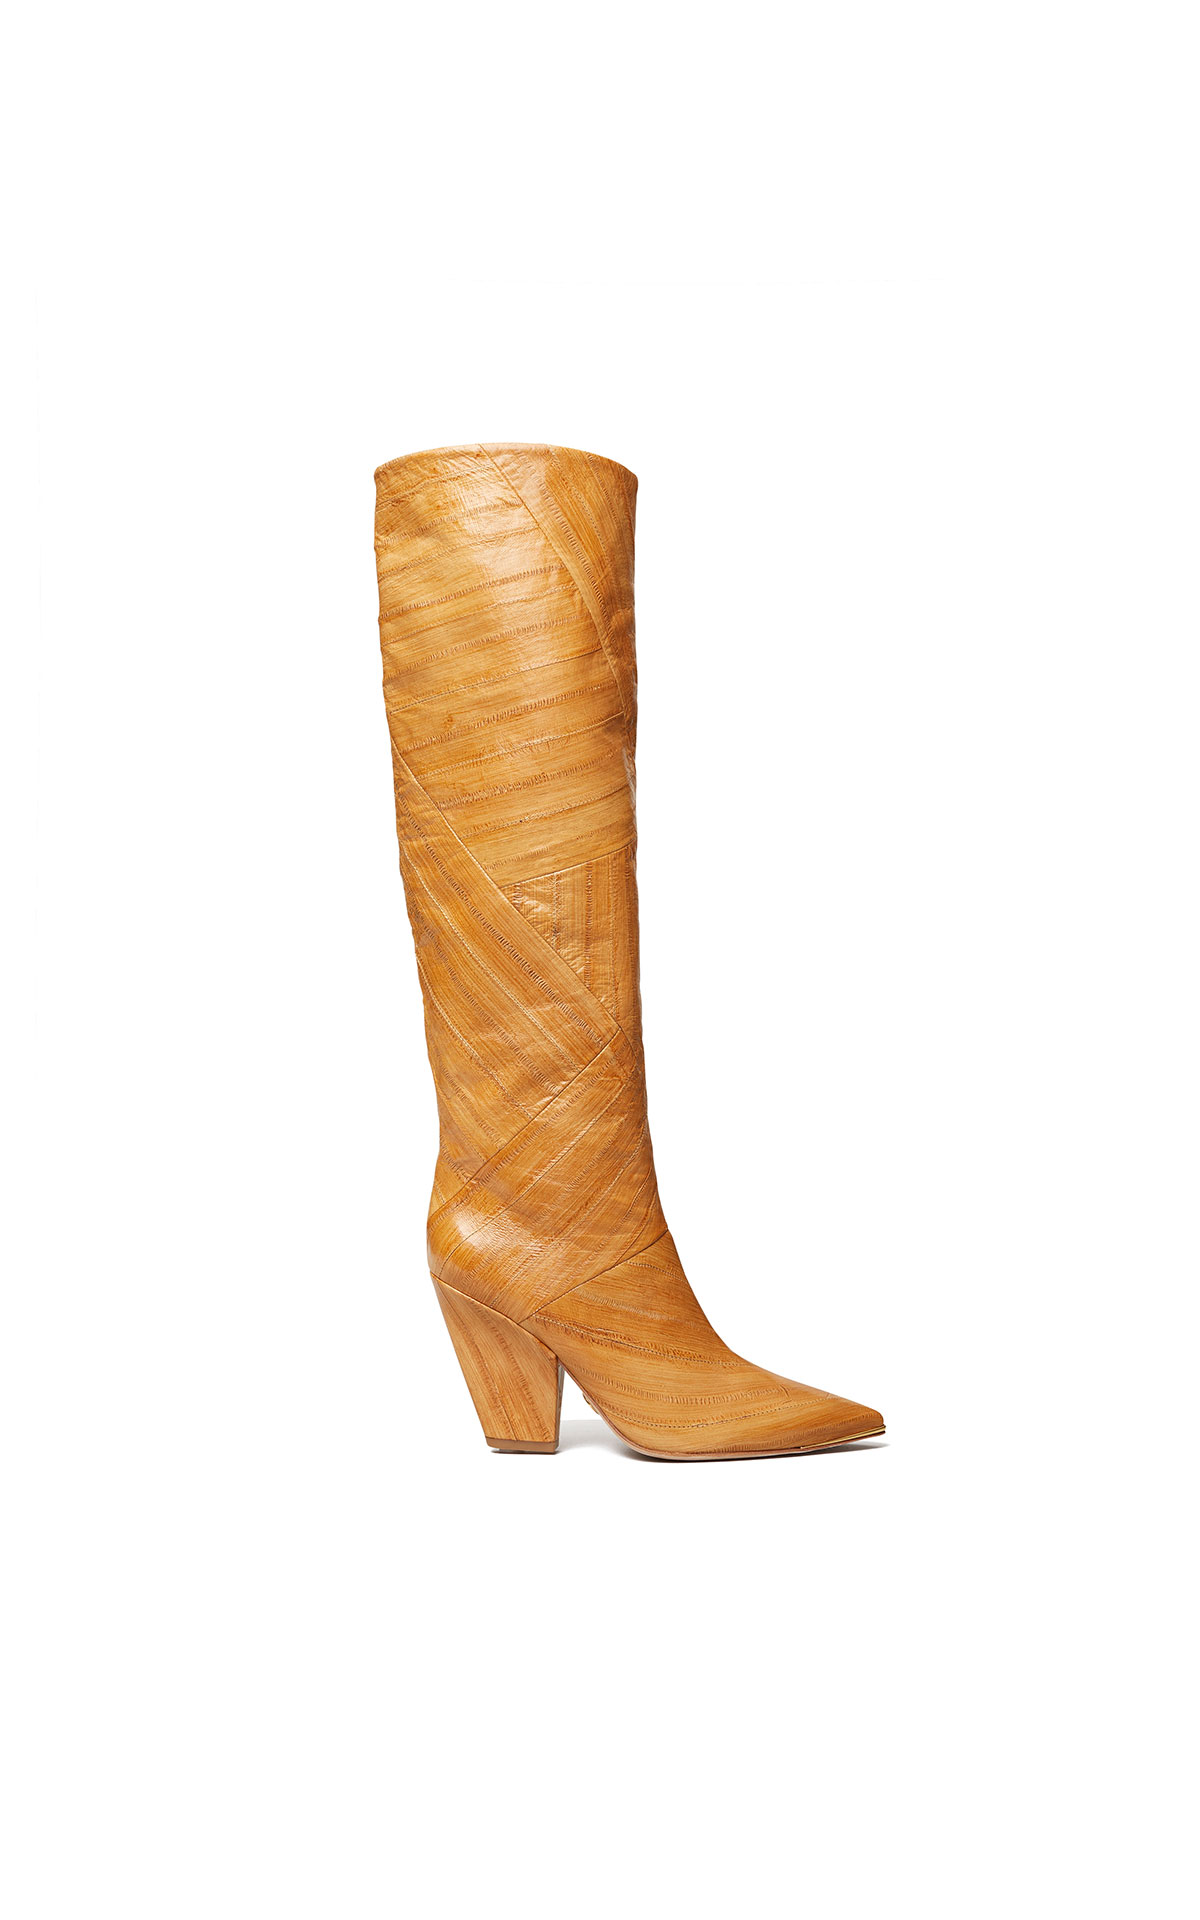 Tory Burch Lila 90mm knee boot from Bicester Village